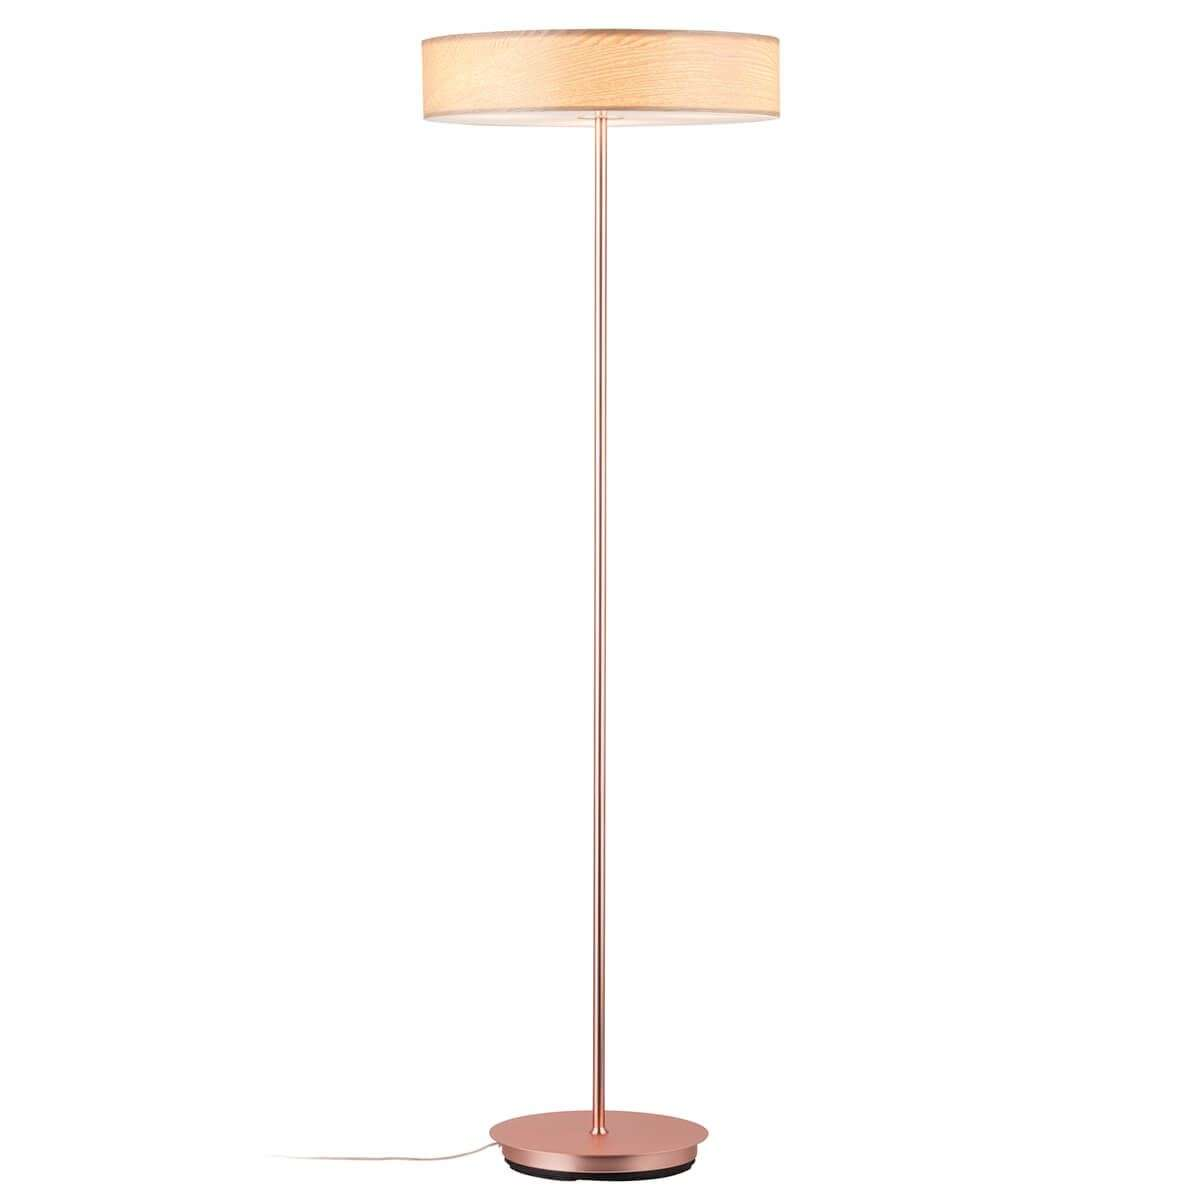 Decorative floor lamp liska with wooden lampshade lights decorative floor lamp liska with wooden lampshade 7601086 32 mozeypictures Images